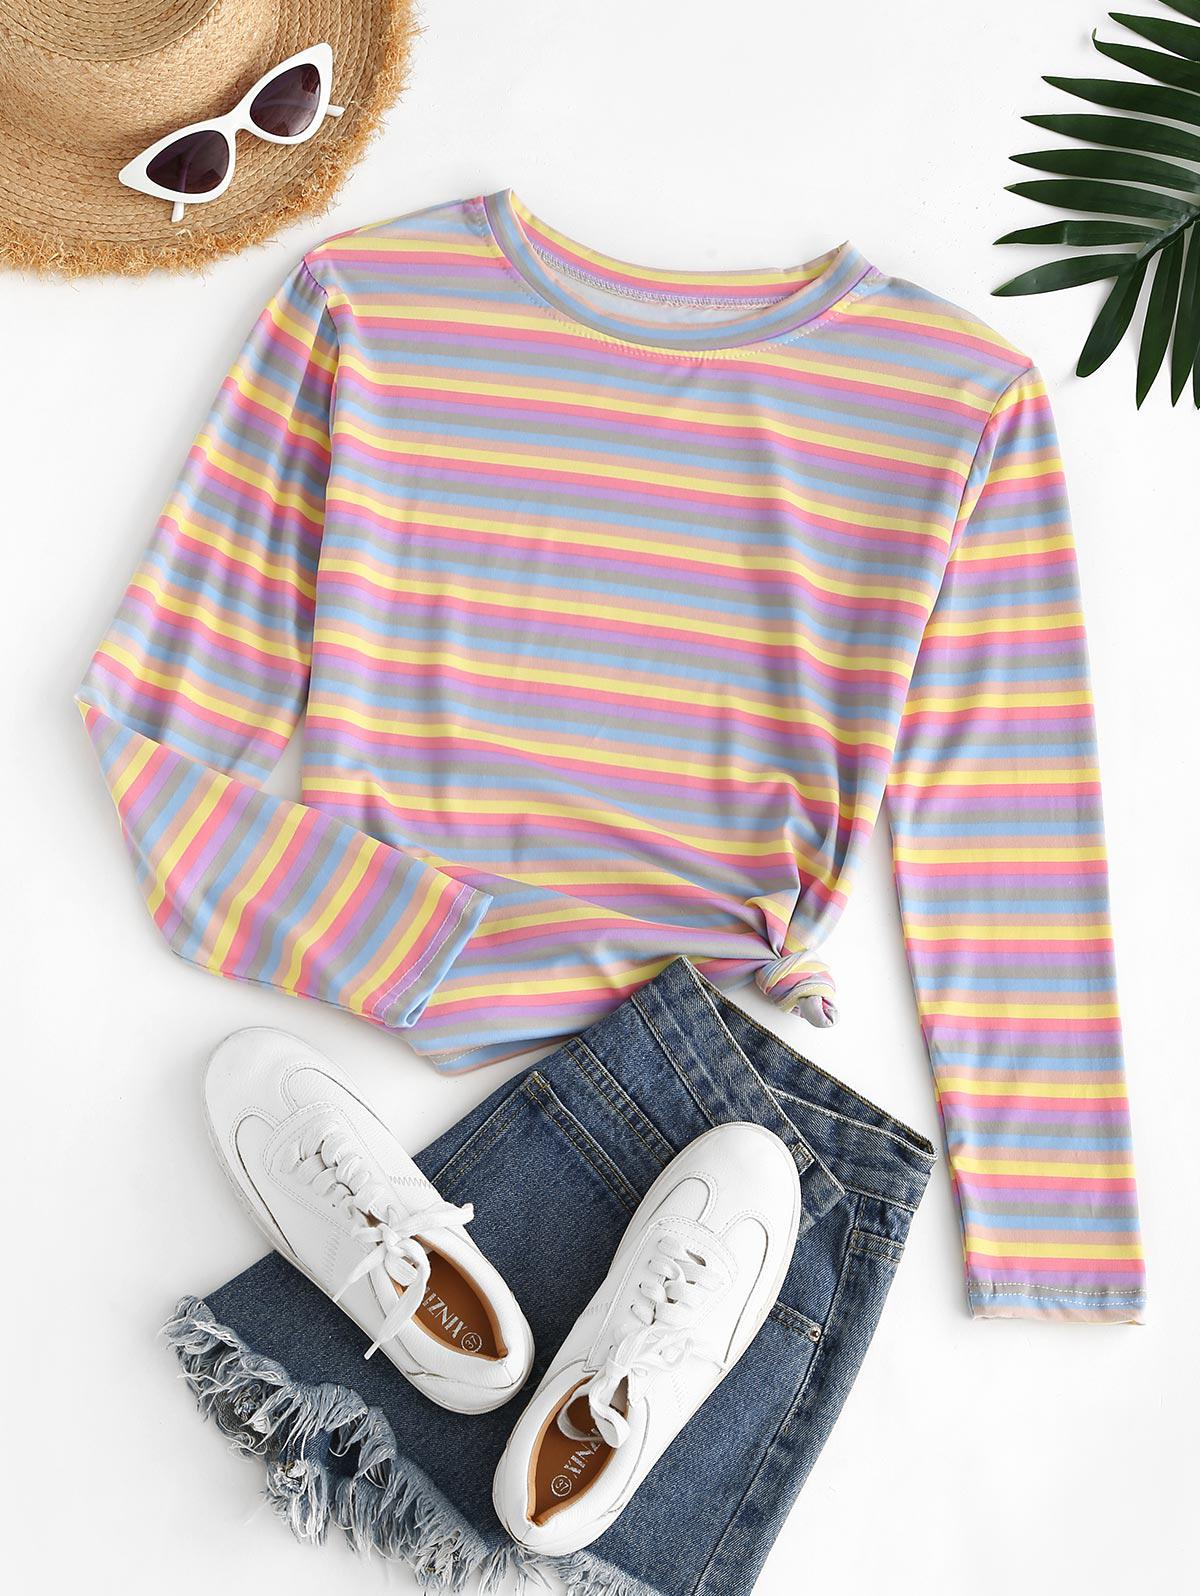 Casual Colorful Stripes Tee